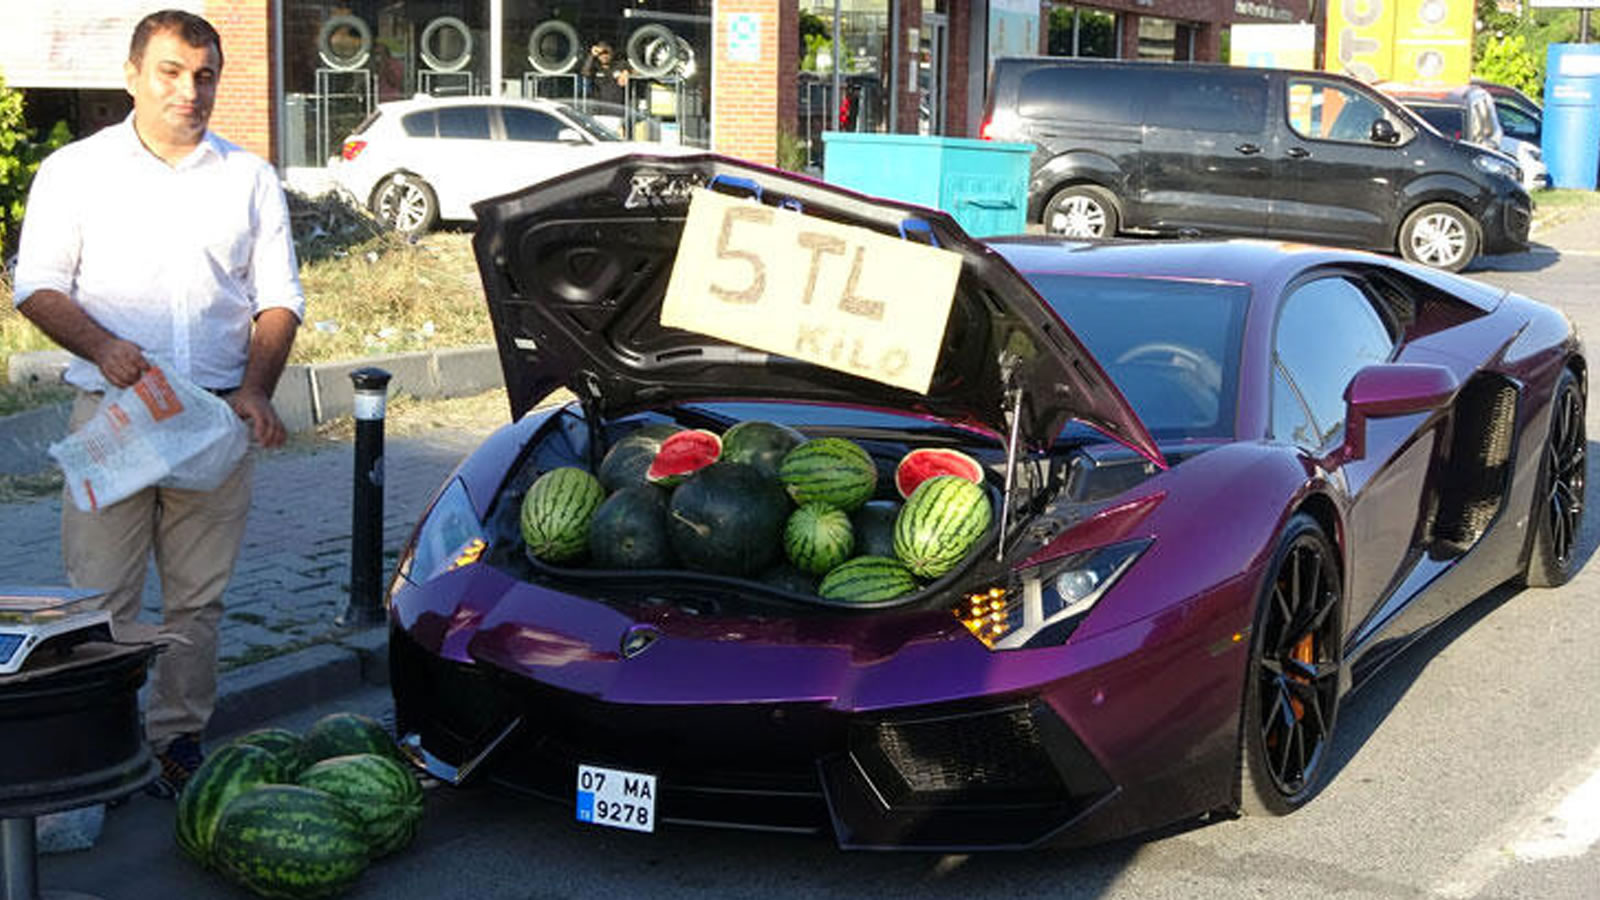 Pics – People went berserk when a Lamborghini owner started selling watermelons from the boot of his shiny $400,000 supercar on a busy street in Istanbul